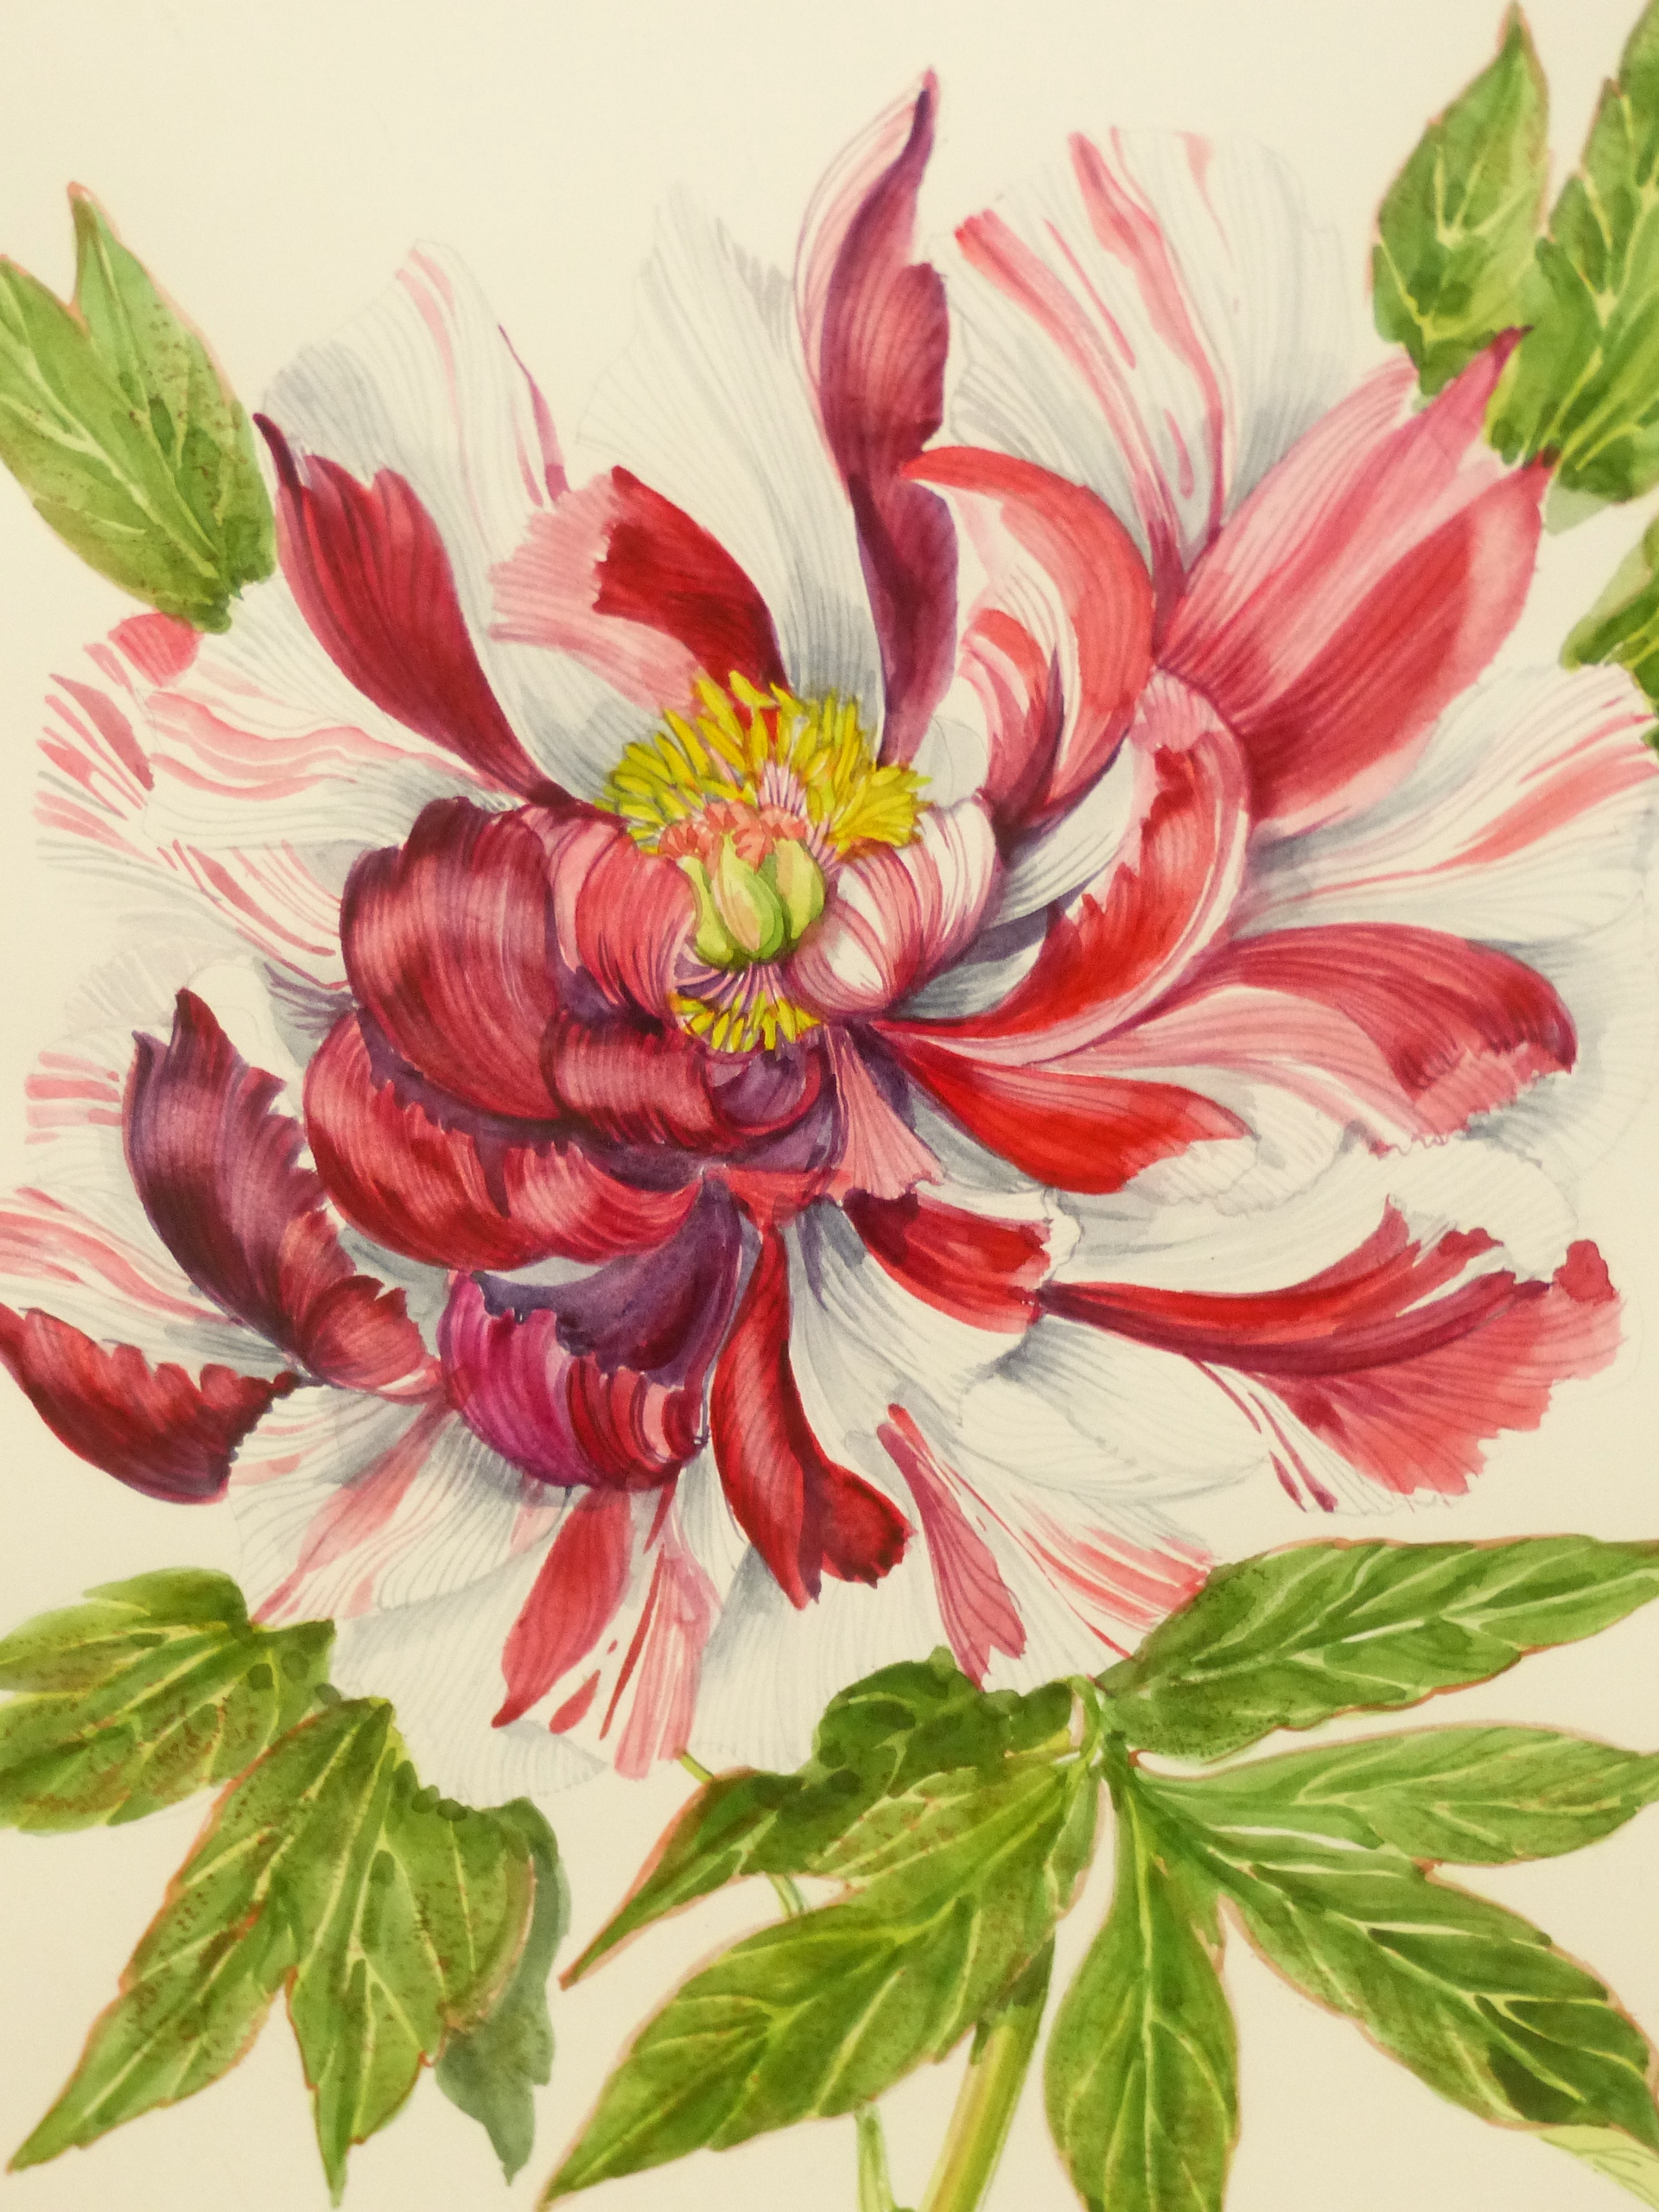 •J. FARVACQUES (20th CENTURY SCHOOL). ARR. THREE BOTANICAL STUDIES, BOTH SIGNED WATERCOLOURS. 36 x